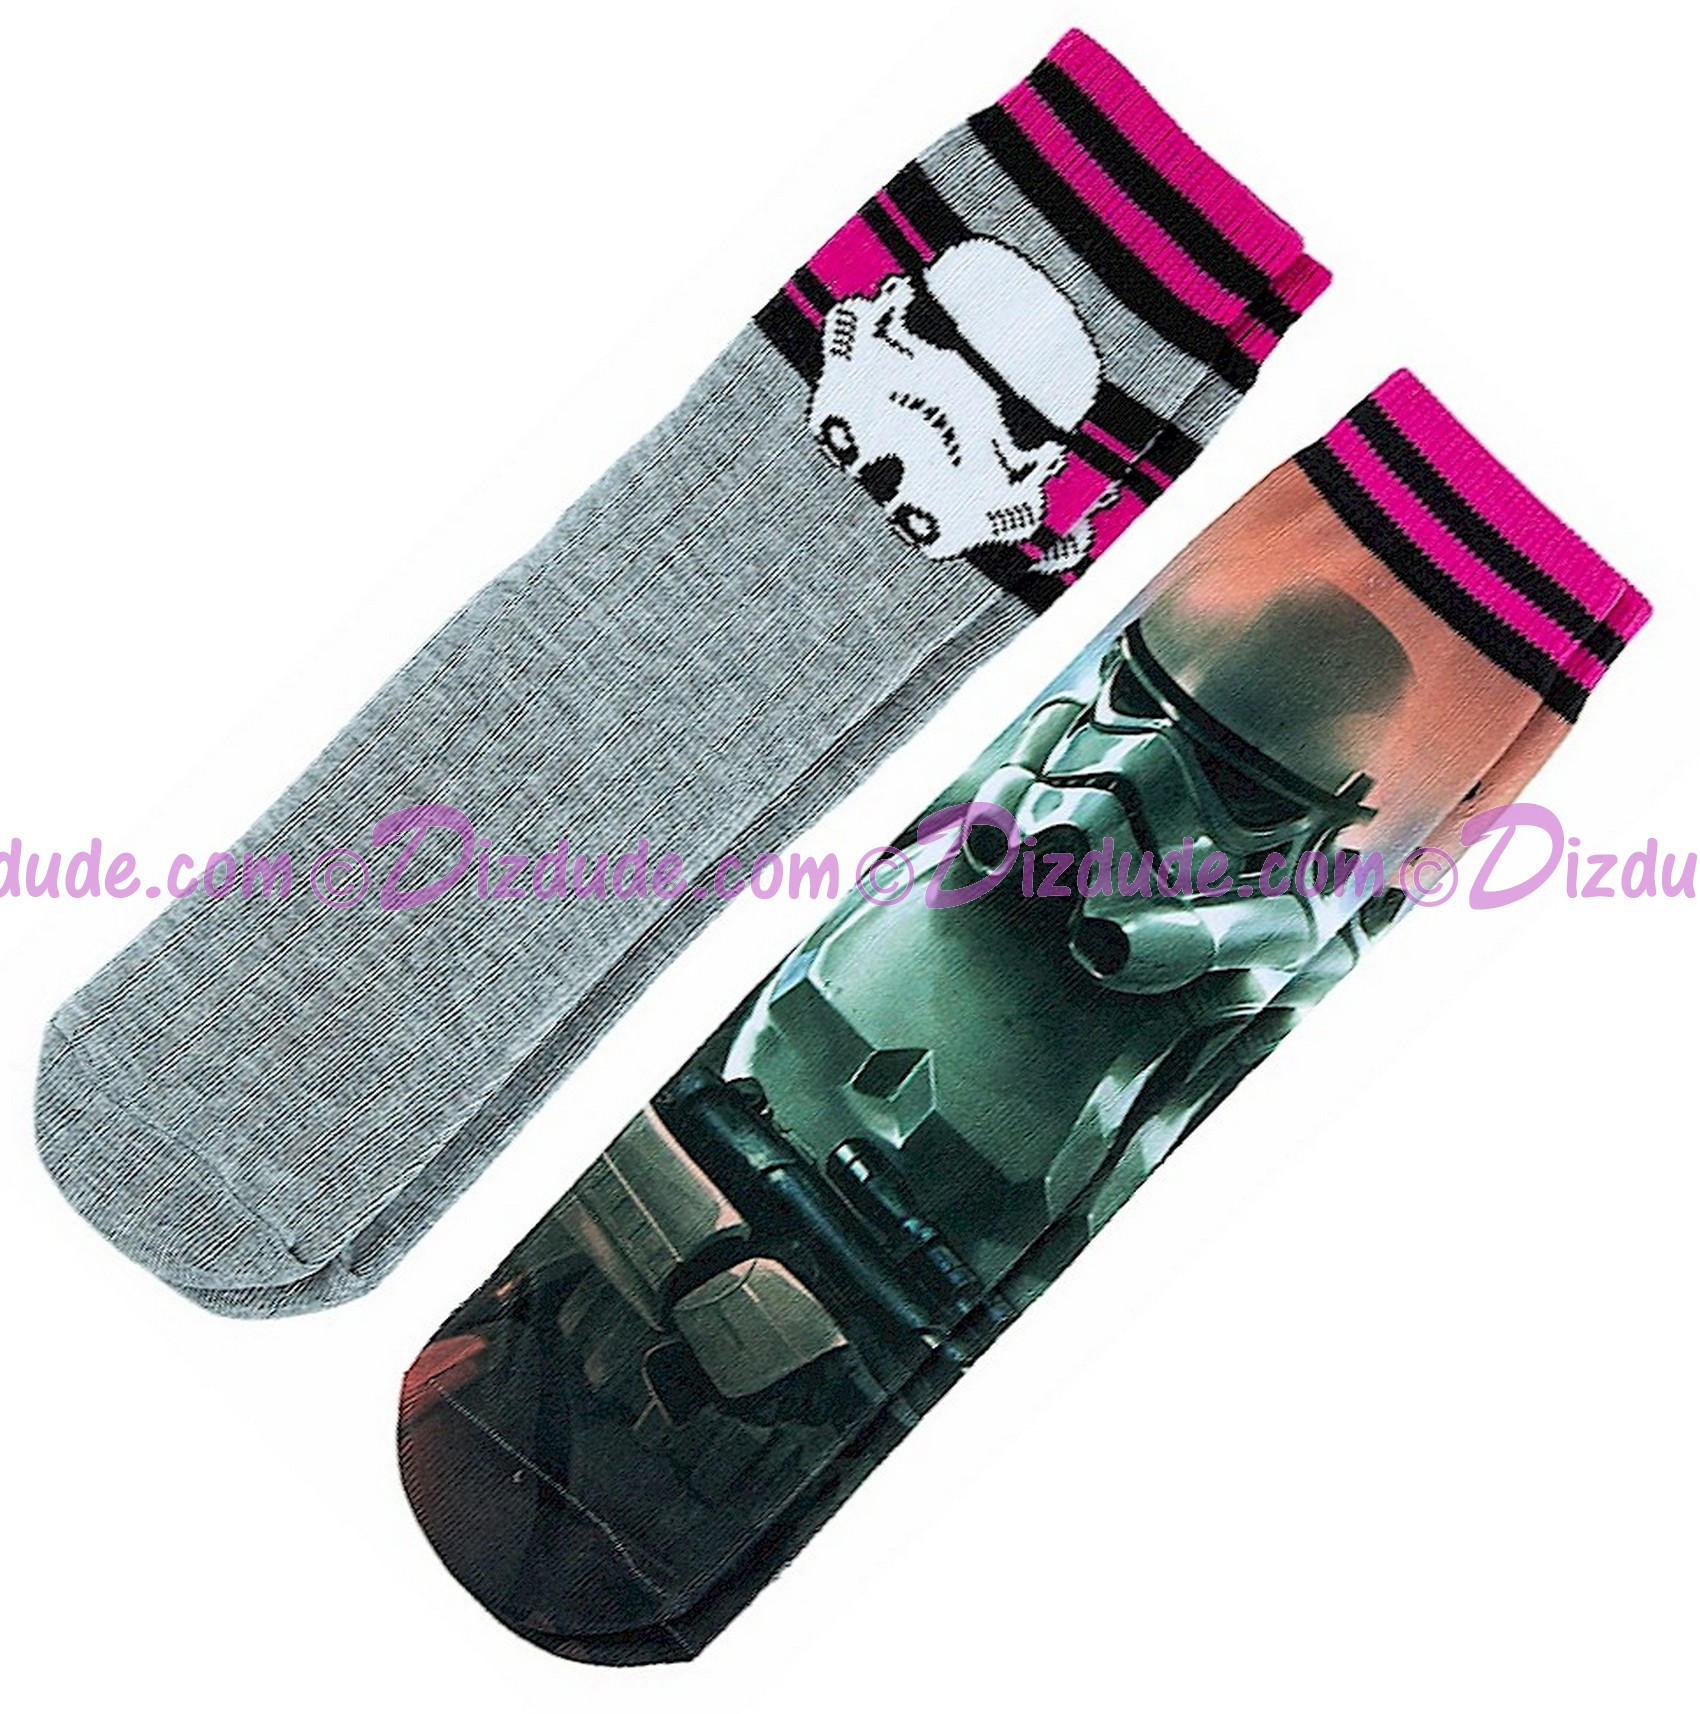 Stormtrooper Set of 2 Adult Socks ~ Disney Star Wars